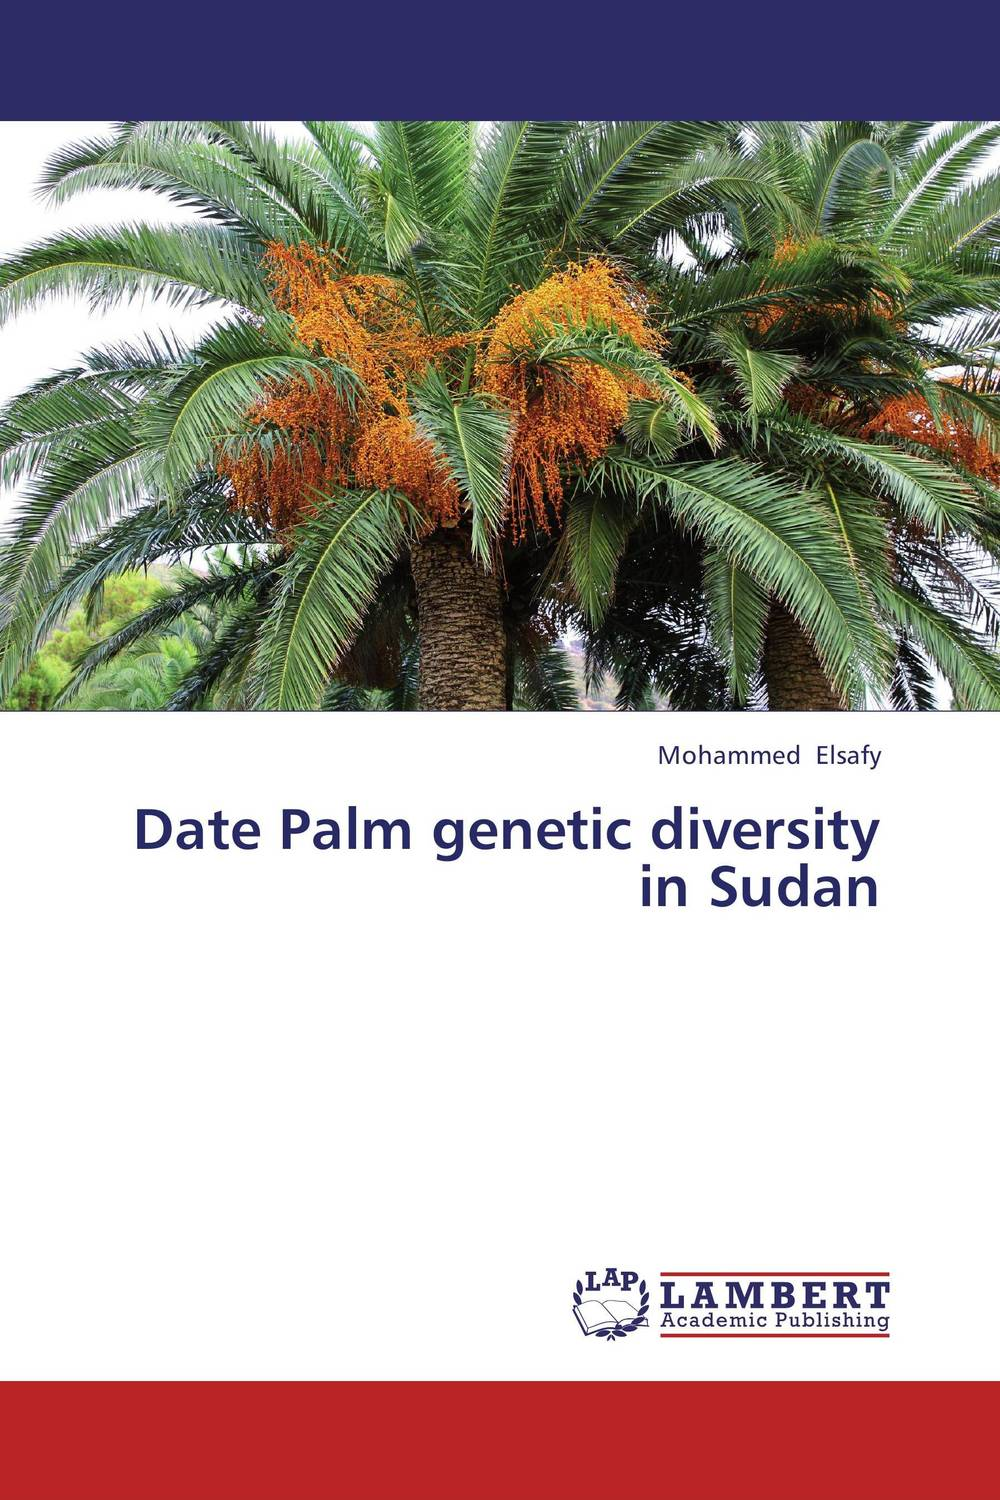 Date Palm genetic diversity in Sudan eman ibrahim el sayed abdel wahab molecular genetic characterization studies of some soybean cultivars